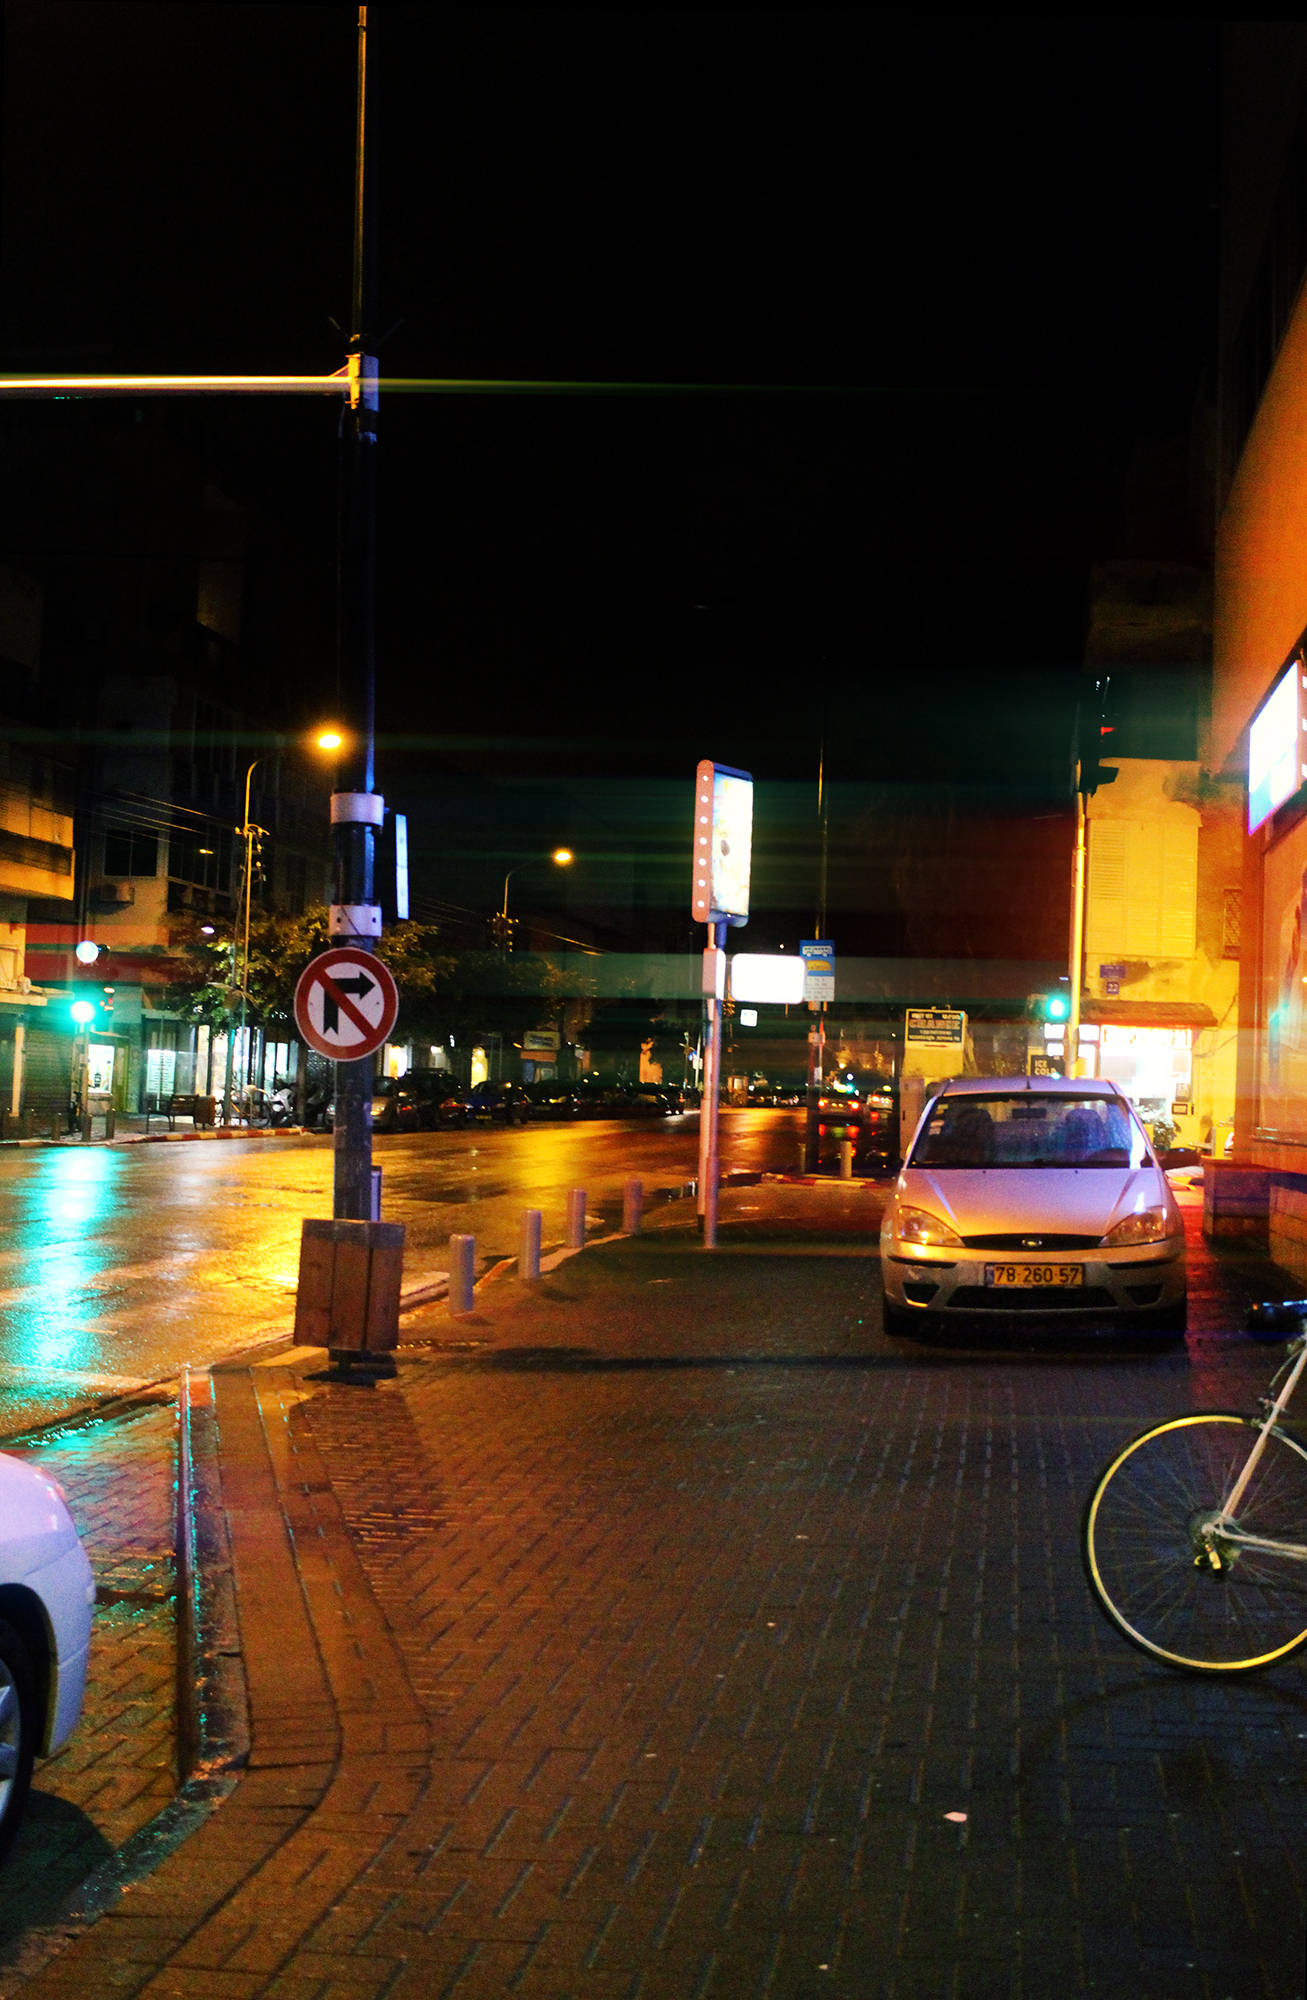 Ben Yehuda Street in Tel-Aviv, Israel. Street and Night photography by Geena Matuson @geenamatuson #thegirlmirage.